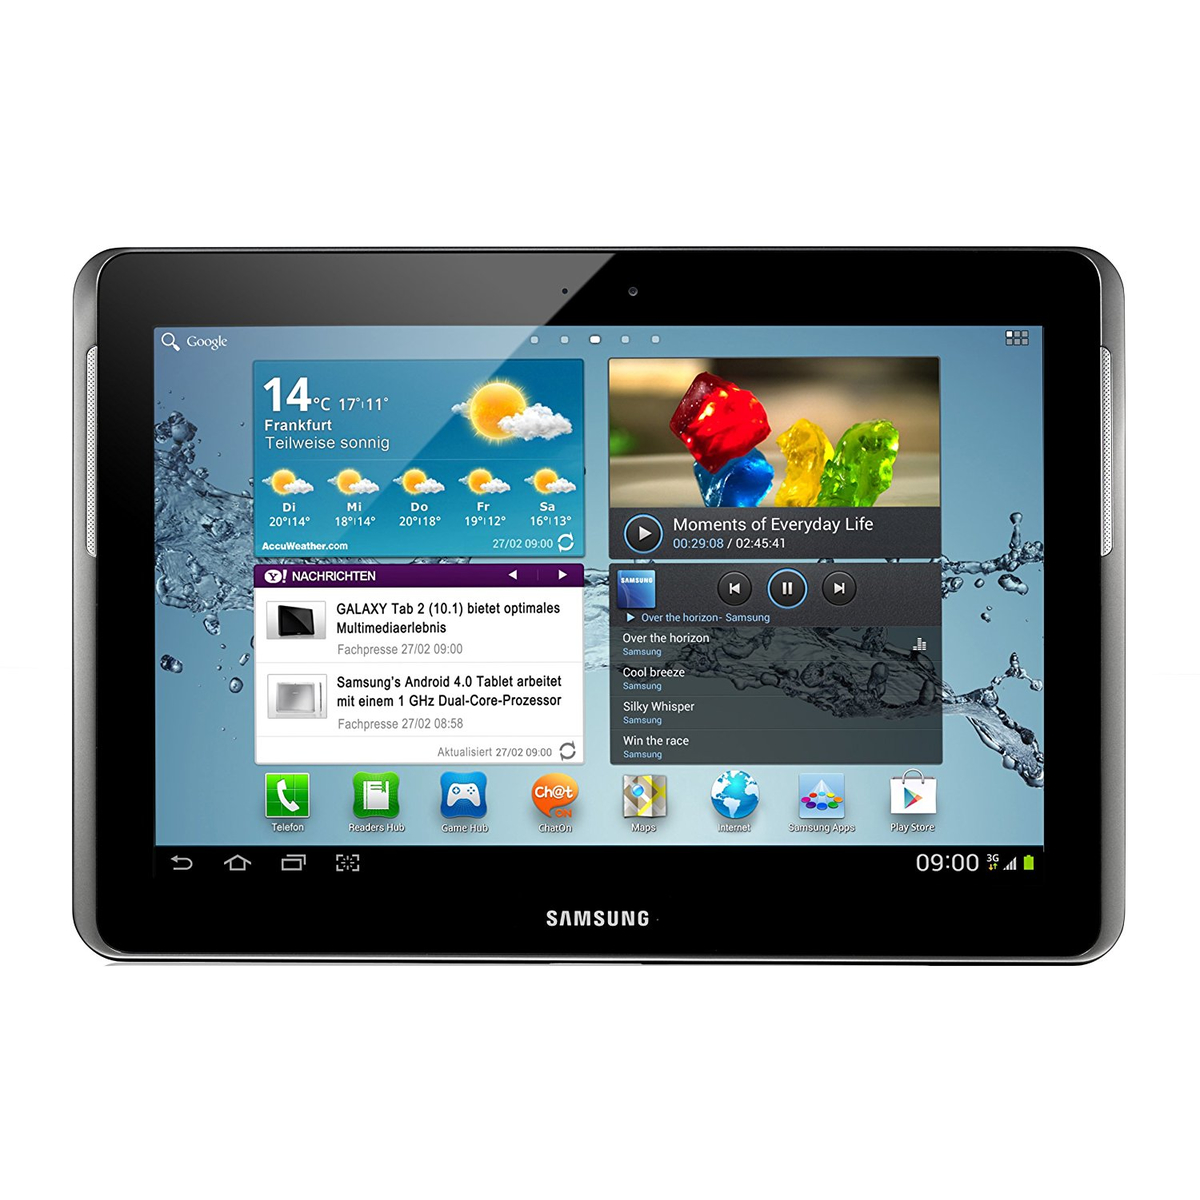 Samsung Galaxy Tab2 silber 16GB WIFI 3G Android Tablet PC